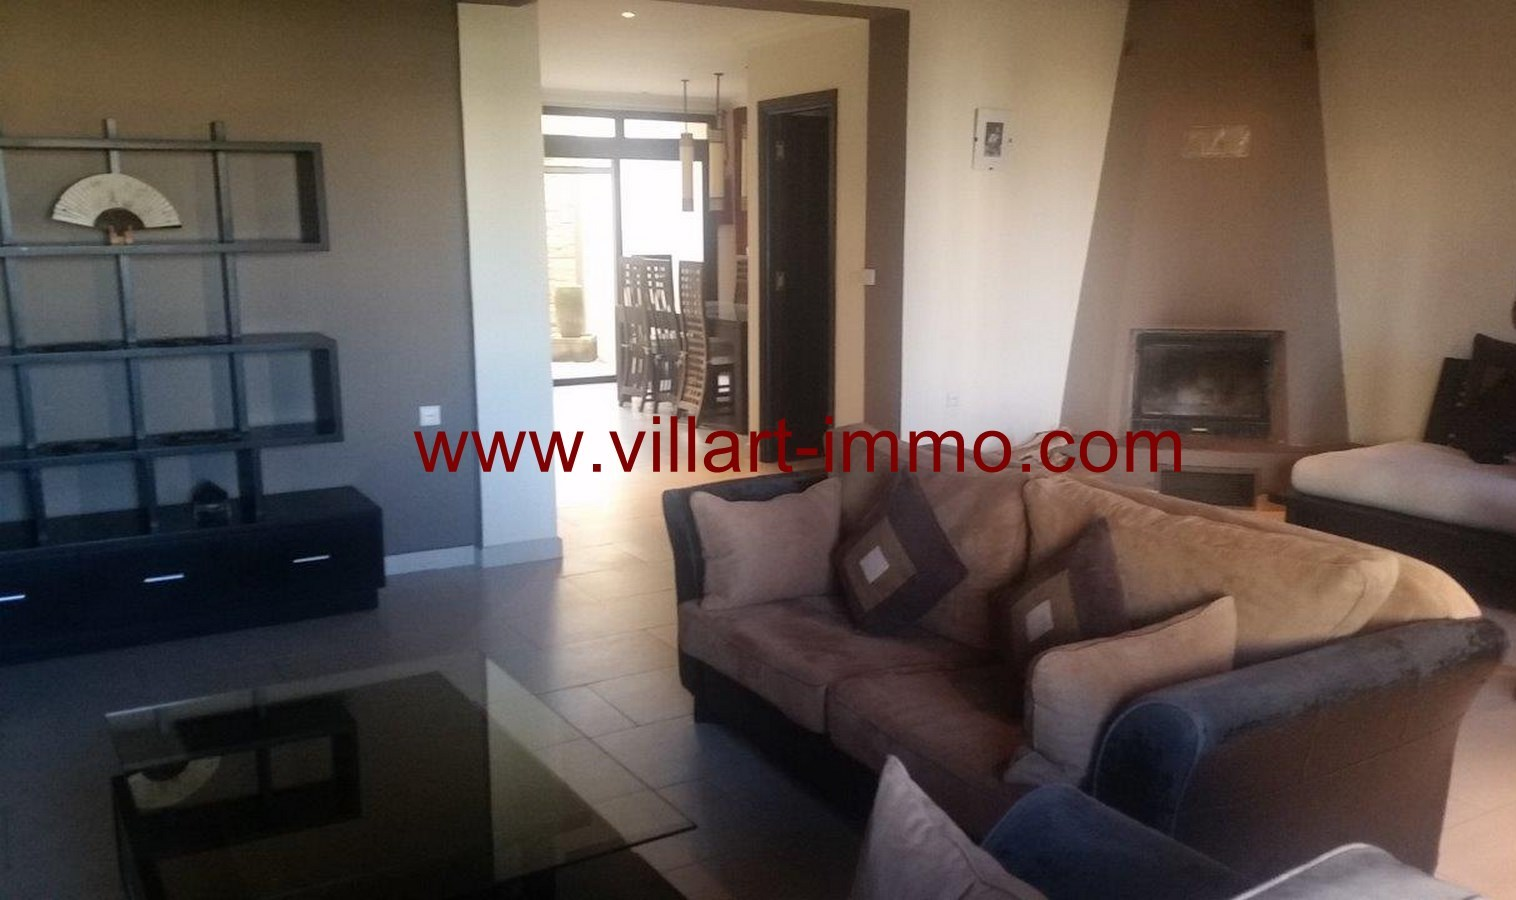 4-To Let-Villa-Furnished-Tangier-Living room 2-LSTV986-Villart-Immo